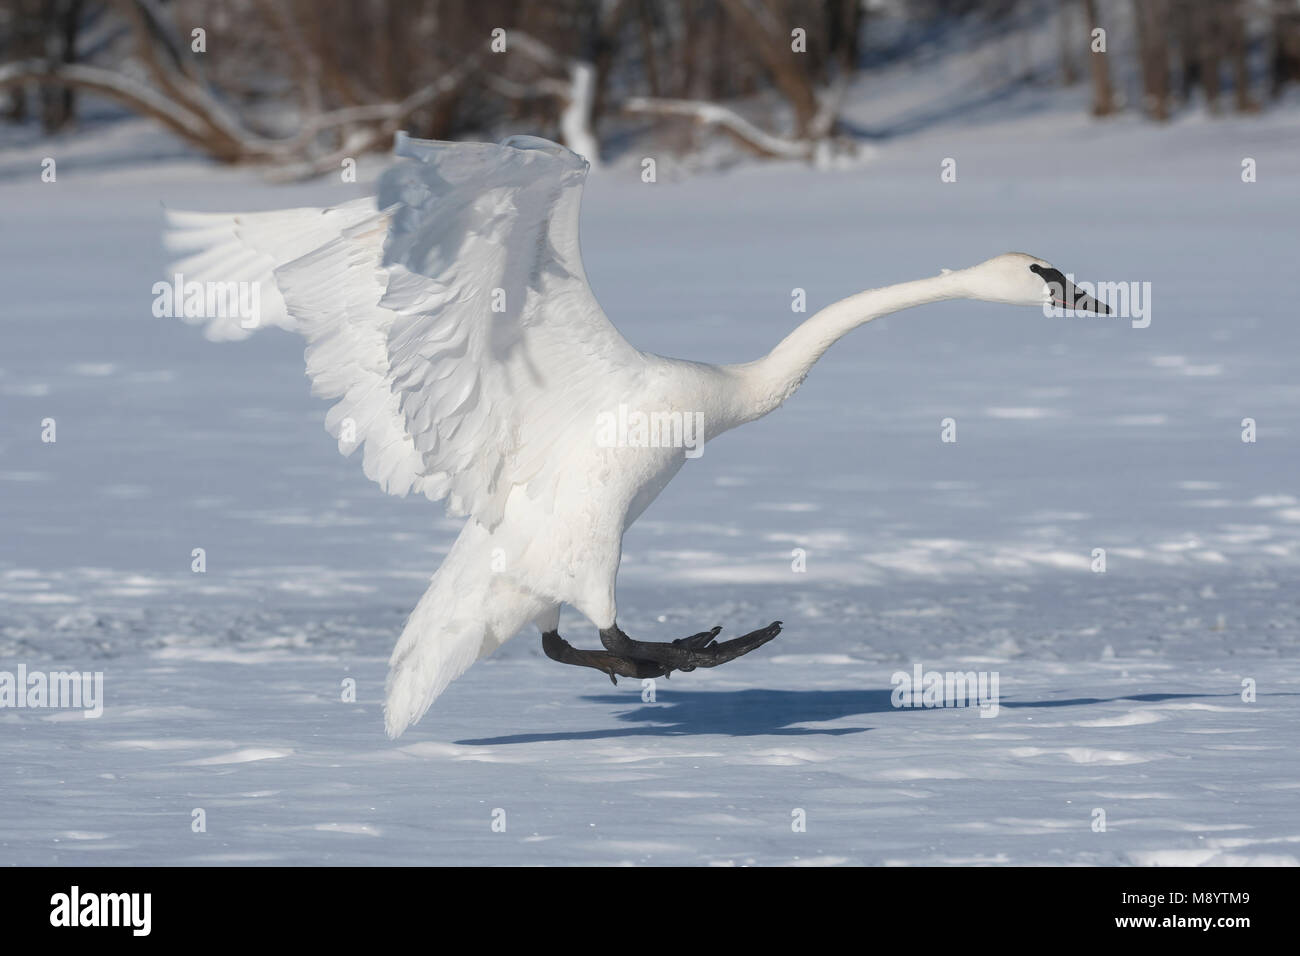 Trumpeter swan (Cygnus buccinator) landing on  St. Croix River.  Hudson, WI. USA, Early January, by Dominique Braud/Dembinsky - Stock Image